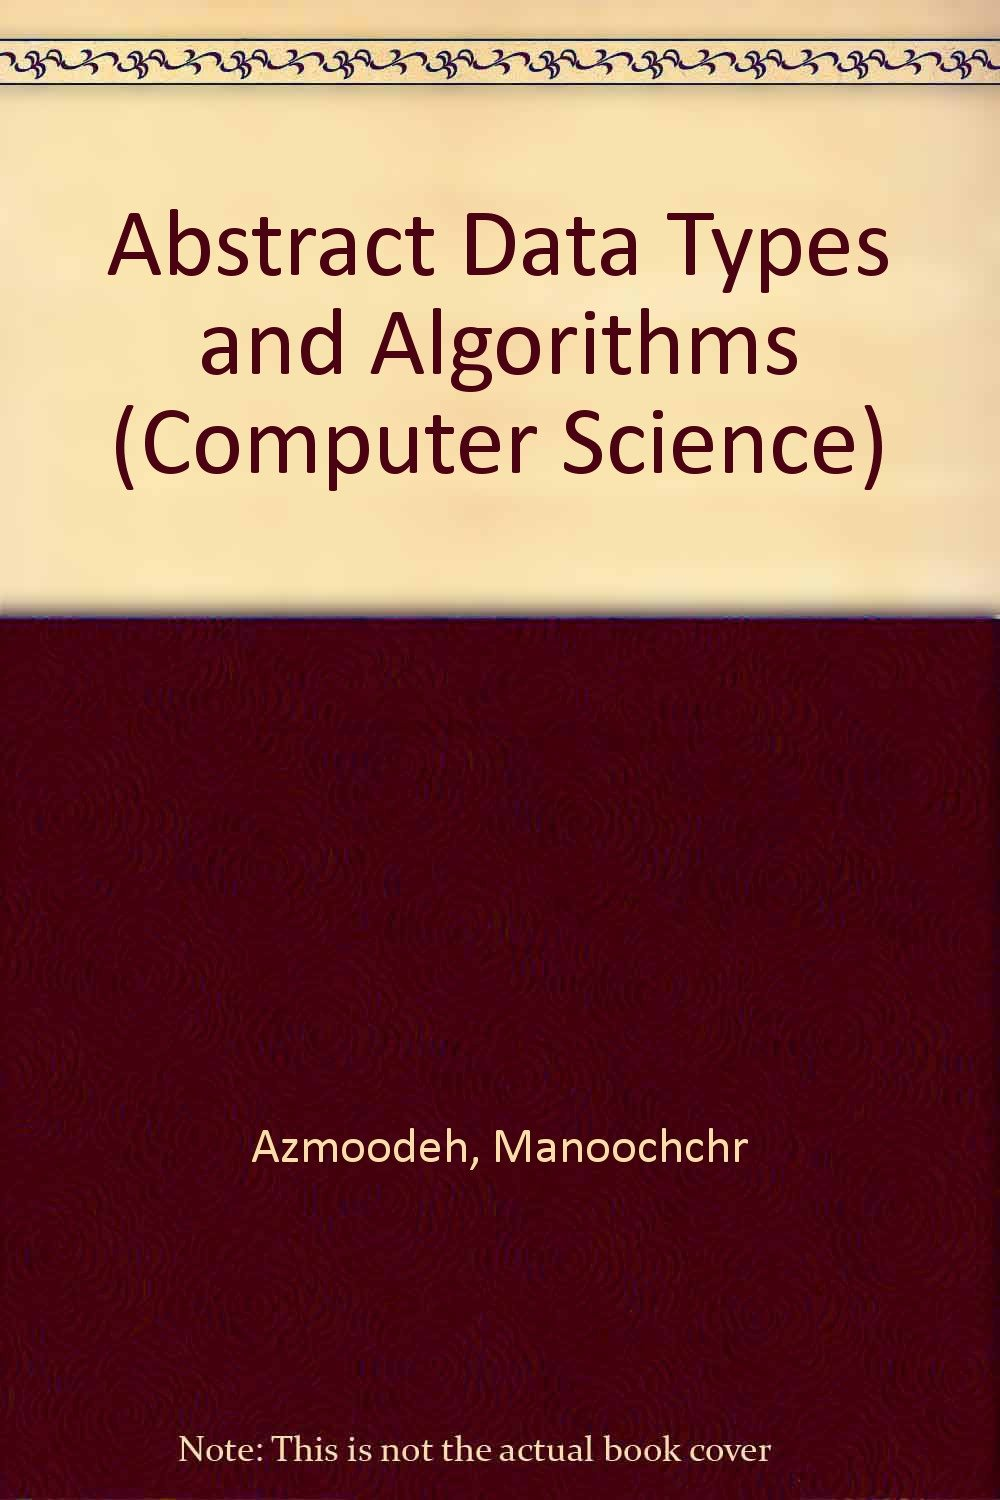 Abstract Data Types And Algorithms Manoochcr Azmoodeh